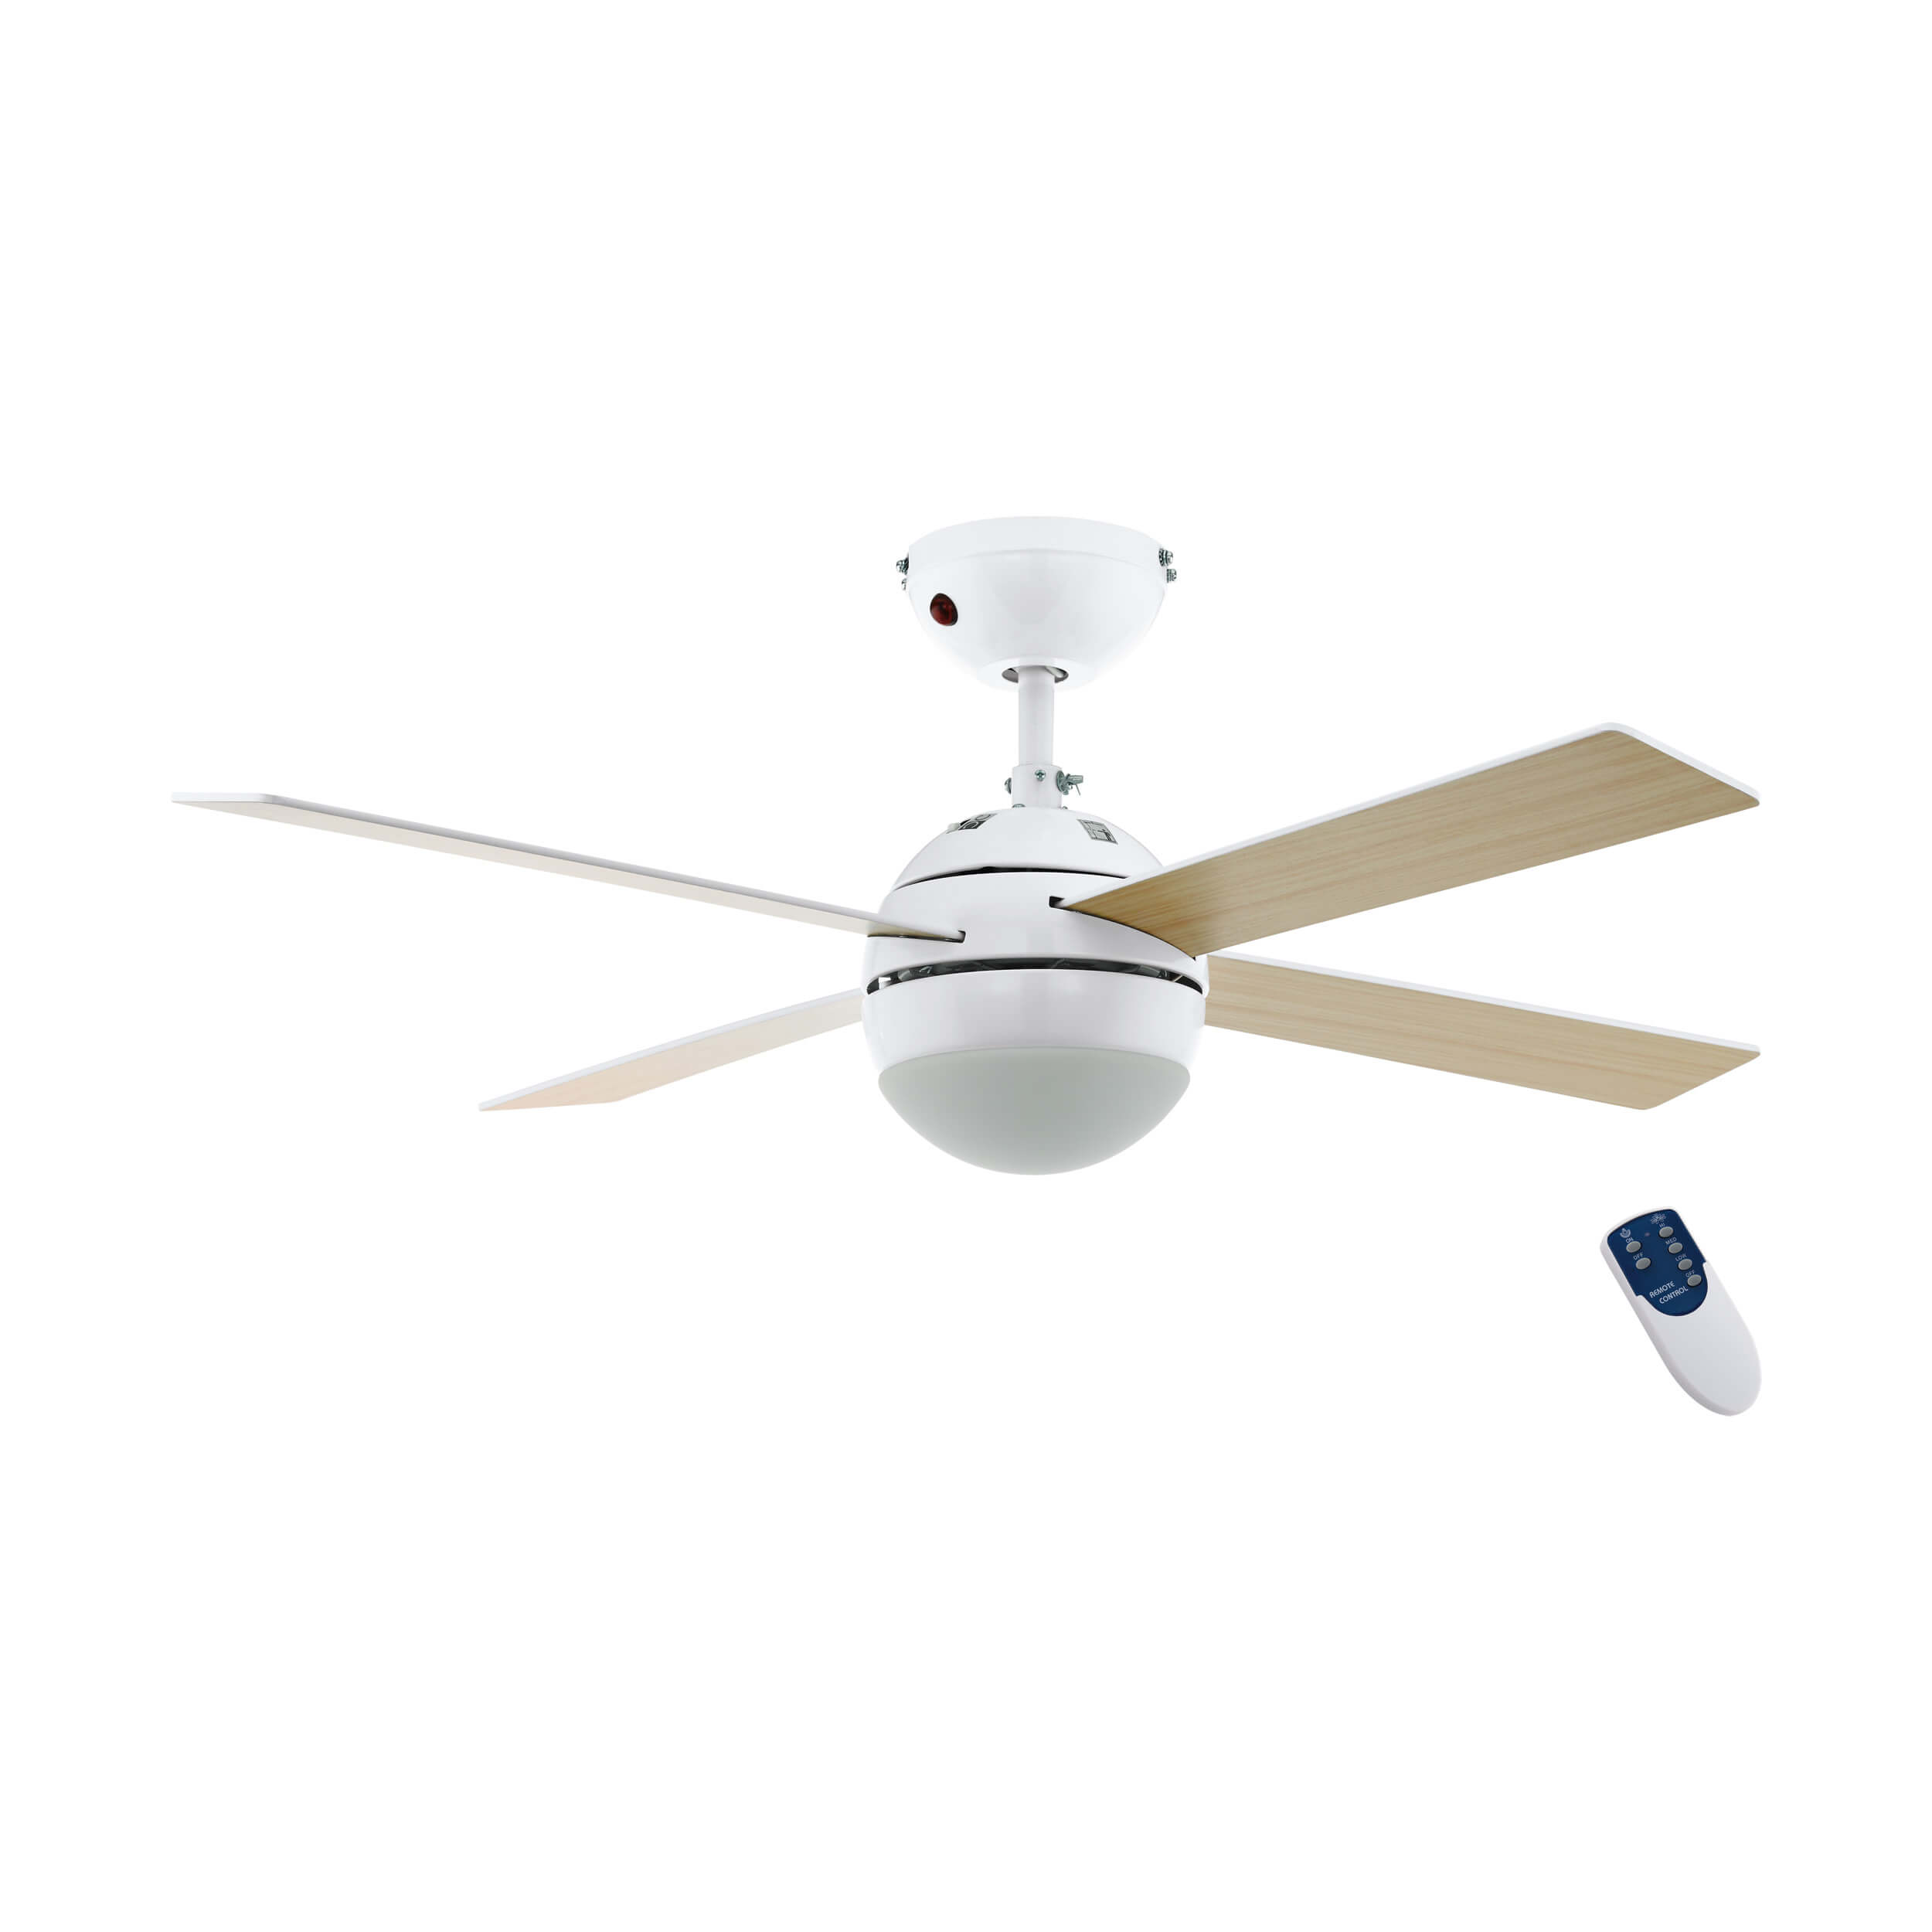 Ceiling Fan Losciale 107cm 42 With Light And Remote Home Commercial Heaters Ventilation Ceiling Fans Uk